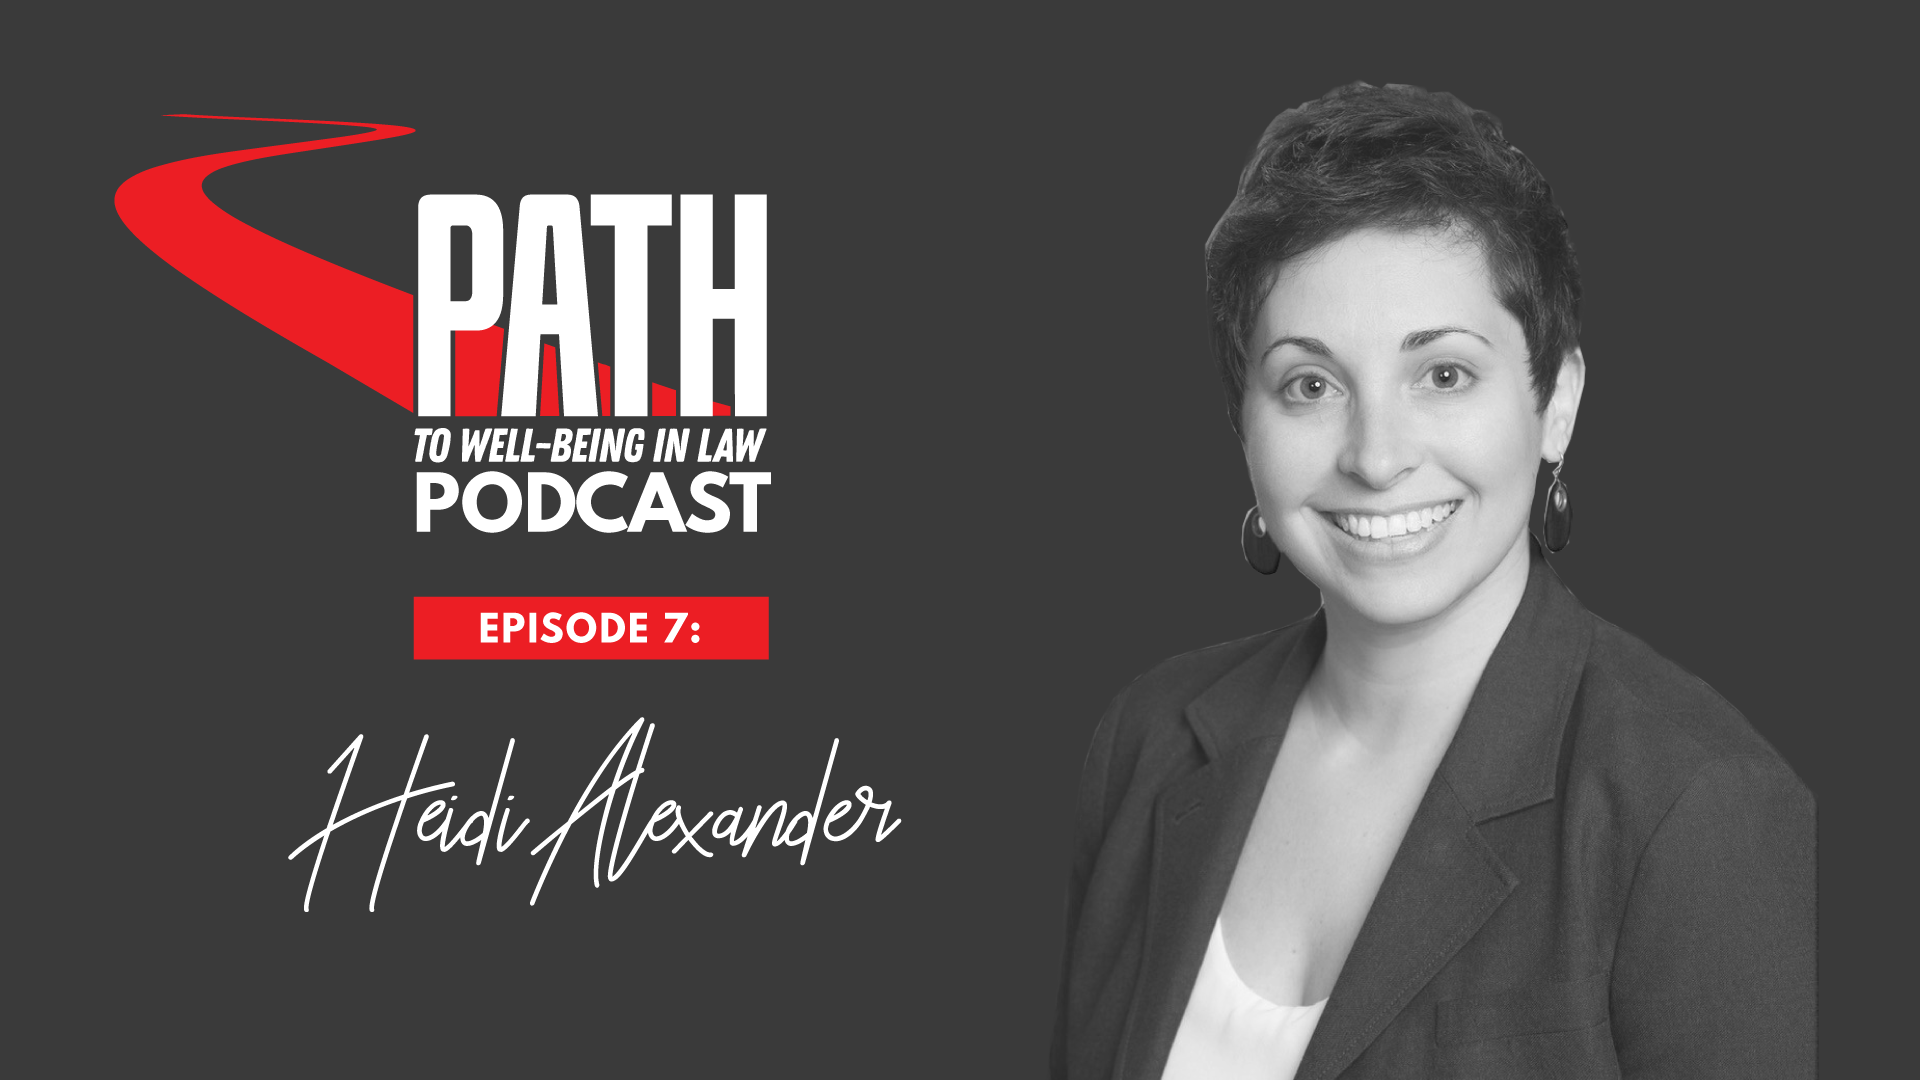 Heidi Alexander on the lawyer wellbeing podcast